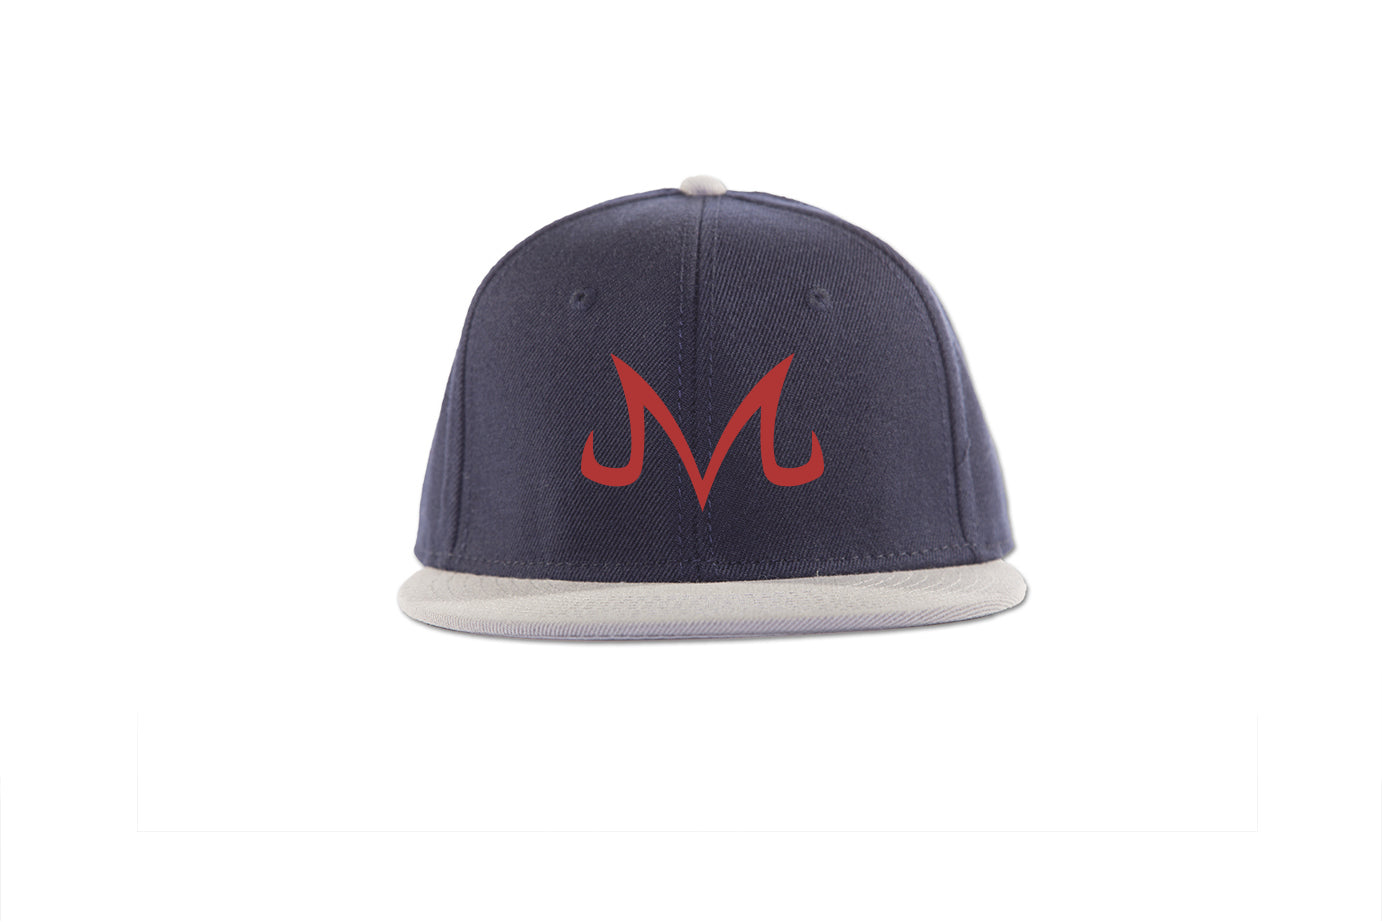 "Majin Snapback - Trendy Gear-Grey/Nvy/Nvy Red""M""-Embroidery - 8"